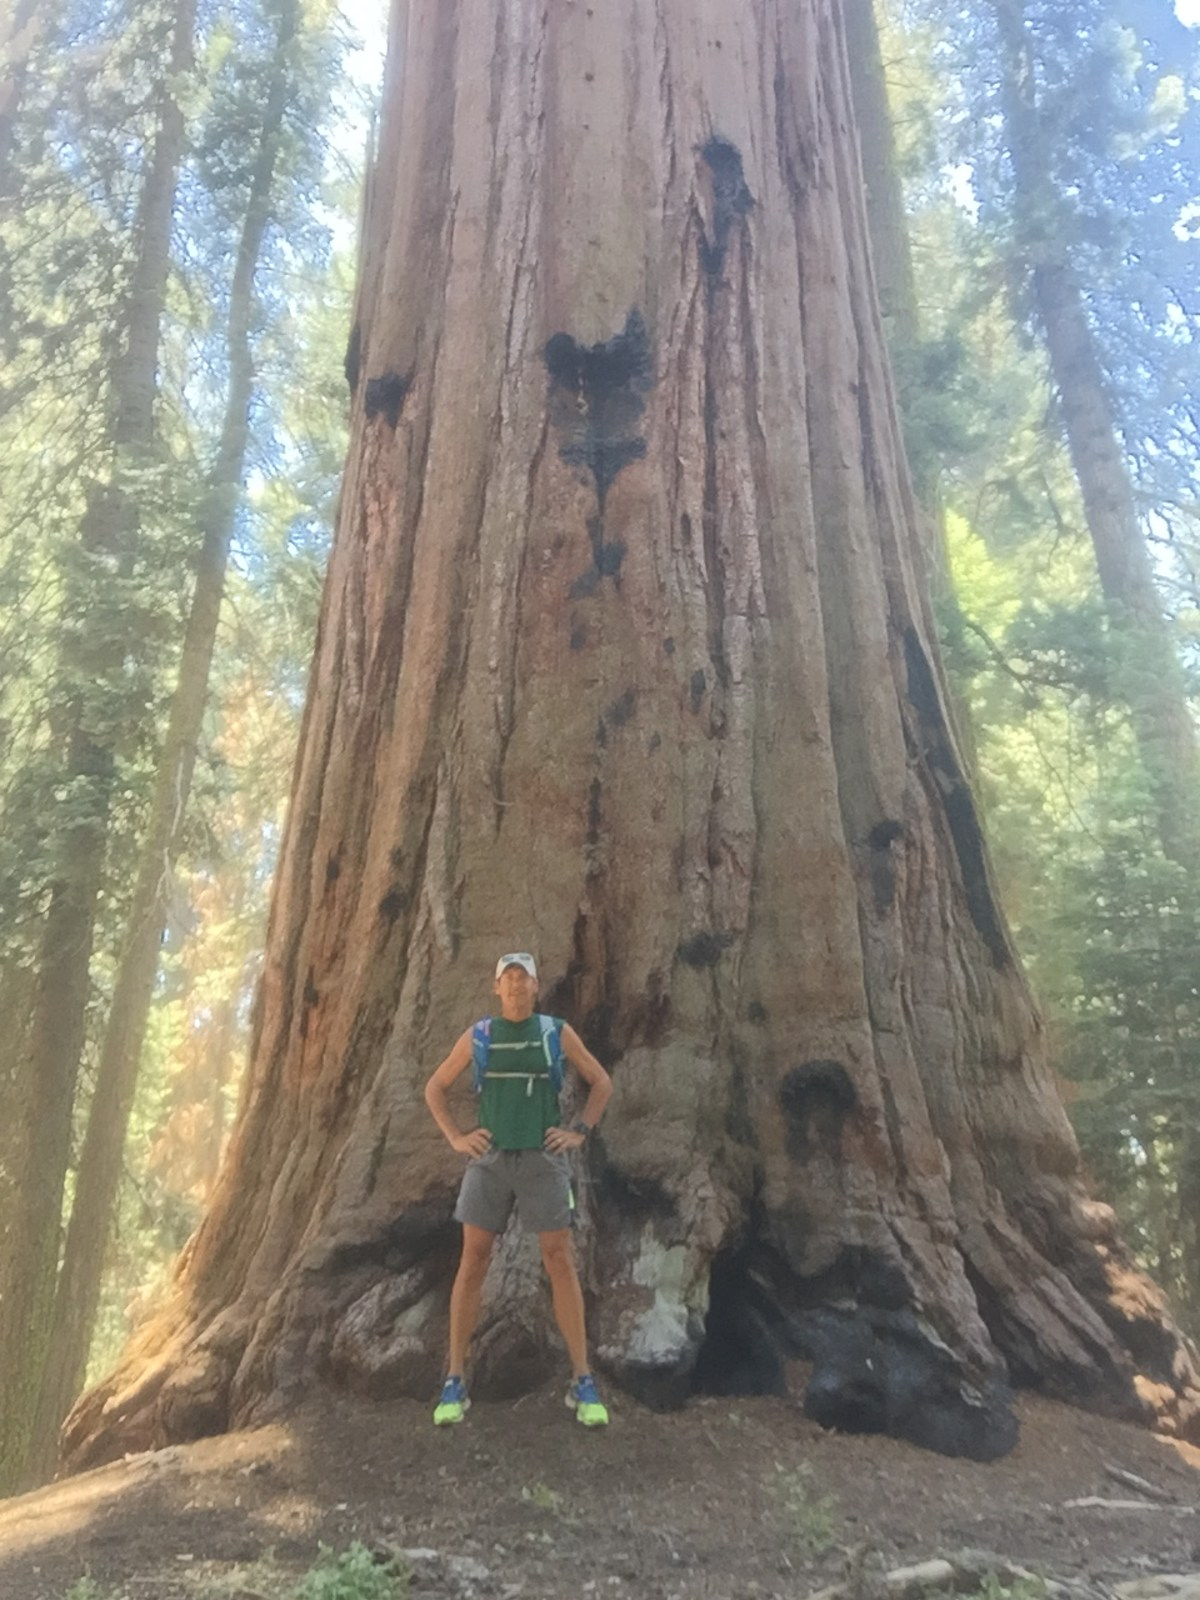 In front of large redwood tree in the John Muir Grove